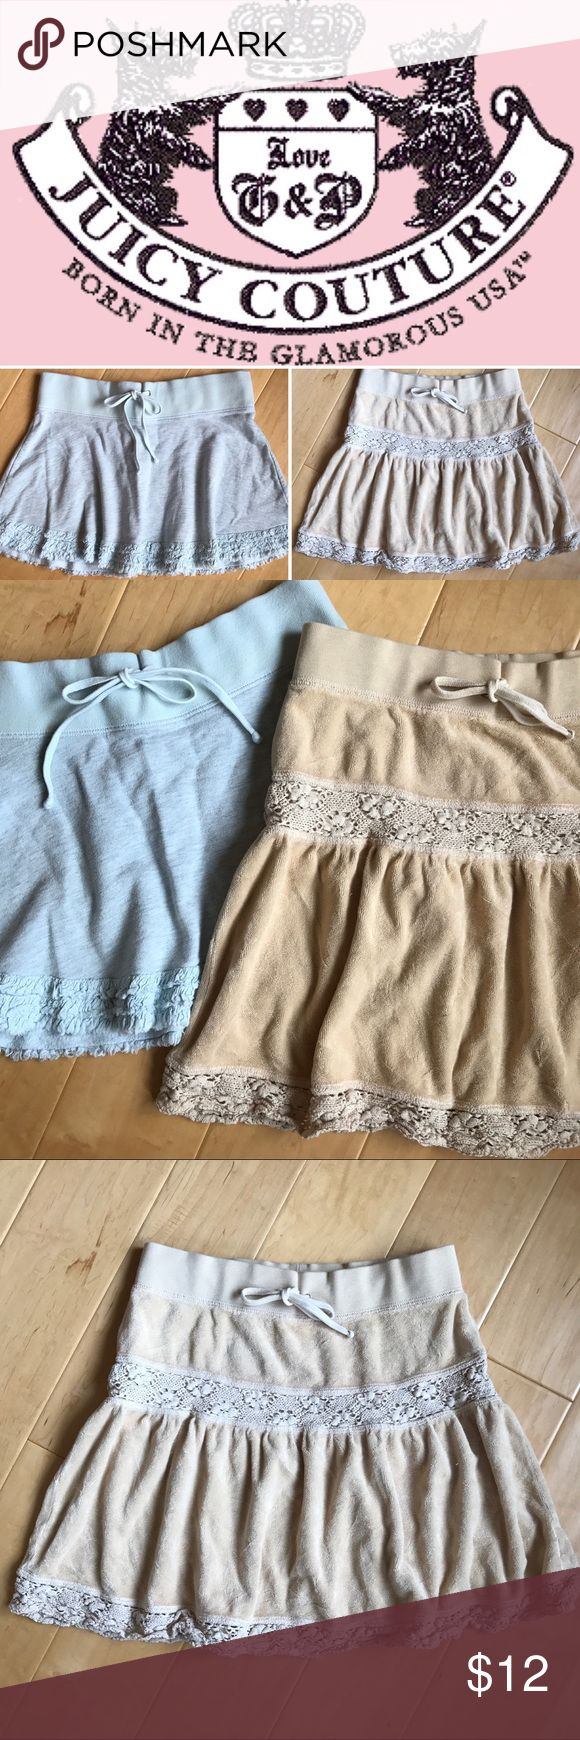 ❌2️⃣BOGO Juicy Couture Skirts Buy One Get One Free! You get BOTH skirts in this Bundle of 2 Juicy Couture Velour Skirts! Elastic waistband and ties in front. One is beige/coffee color the other is a light blue heather gray. Perfect for summer and beach weather.                                                    ☀️From a non-smoking no pets home ☀️Reasonable offers are always welcome ☀️Bundle 3 & save 30% ☀️Orders are shipped next business day ☀️Happy to answer any questions Juicy Couture…